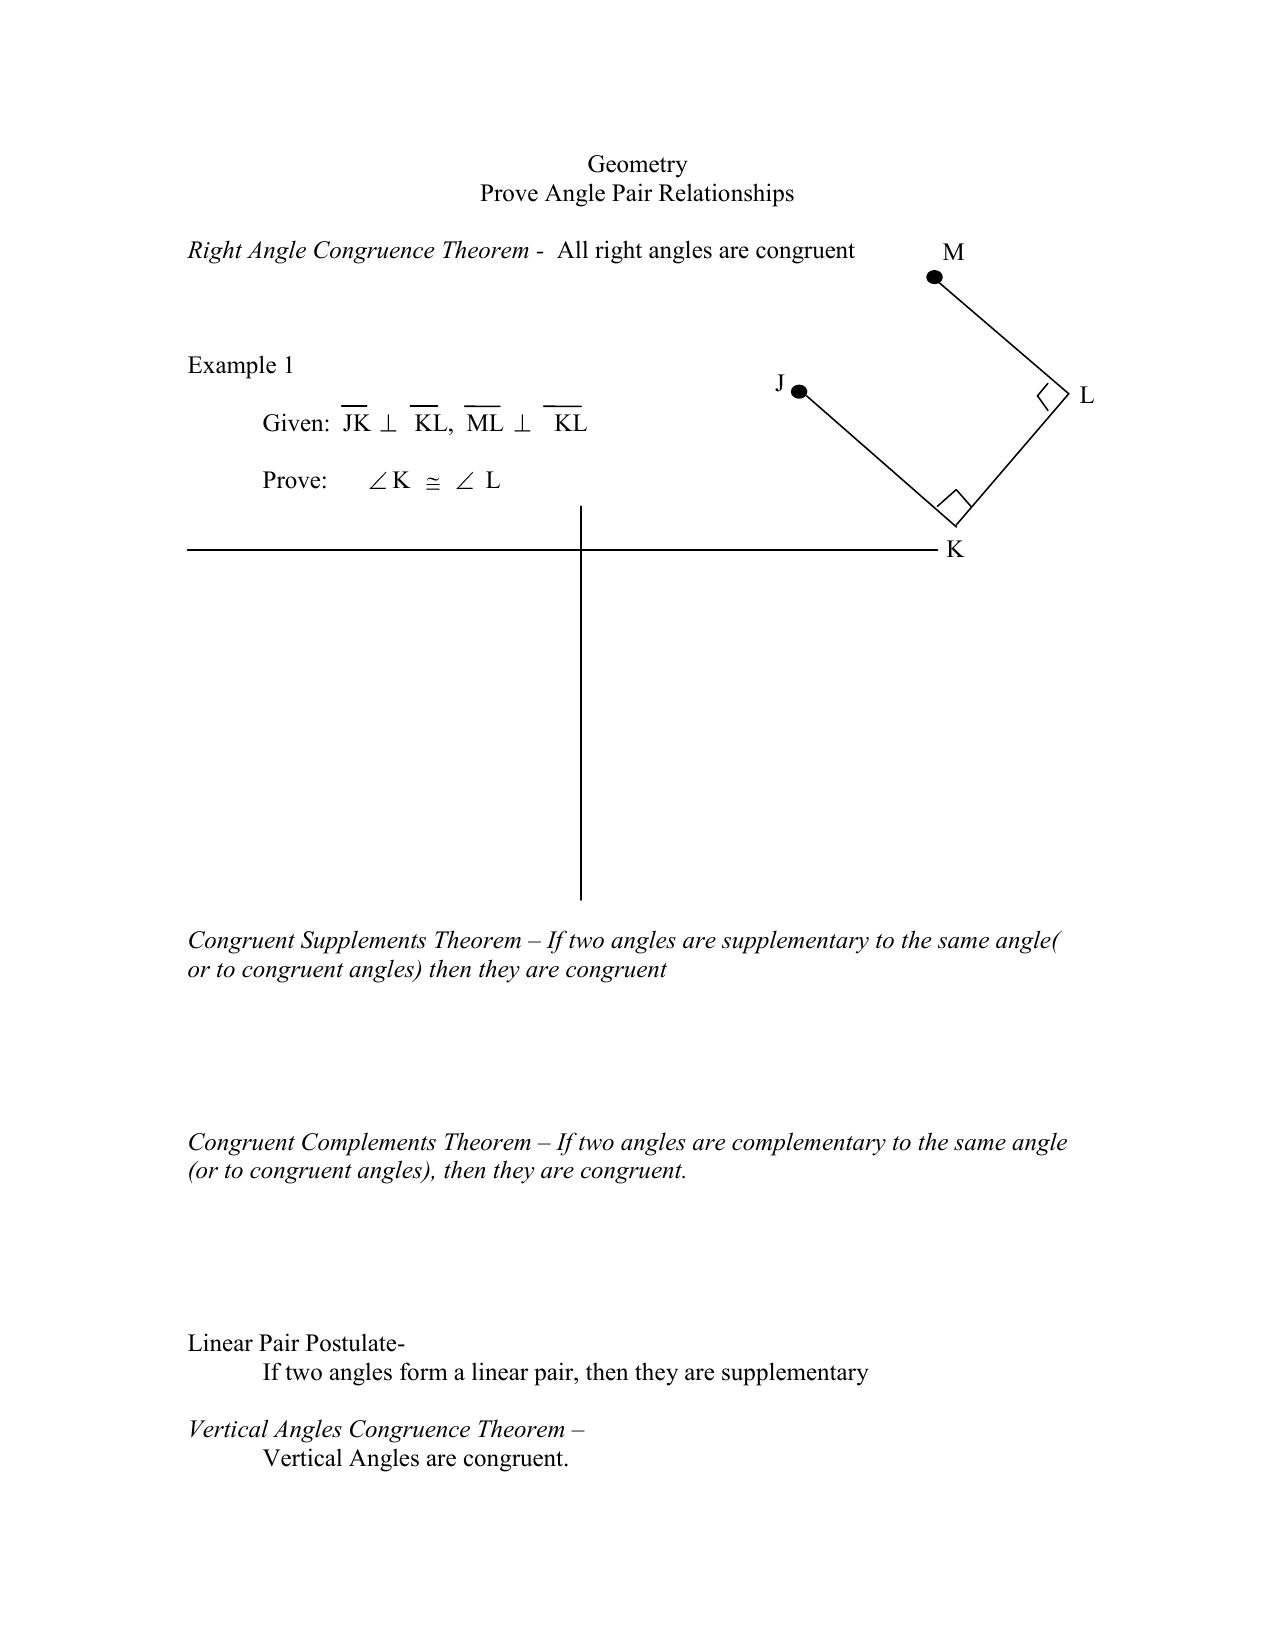 Geometry Prove Angle Pair Relationships Right Angle Congruence